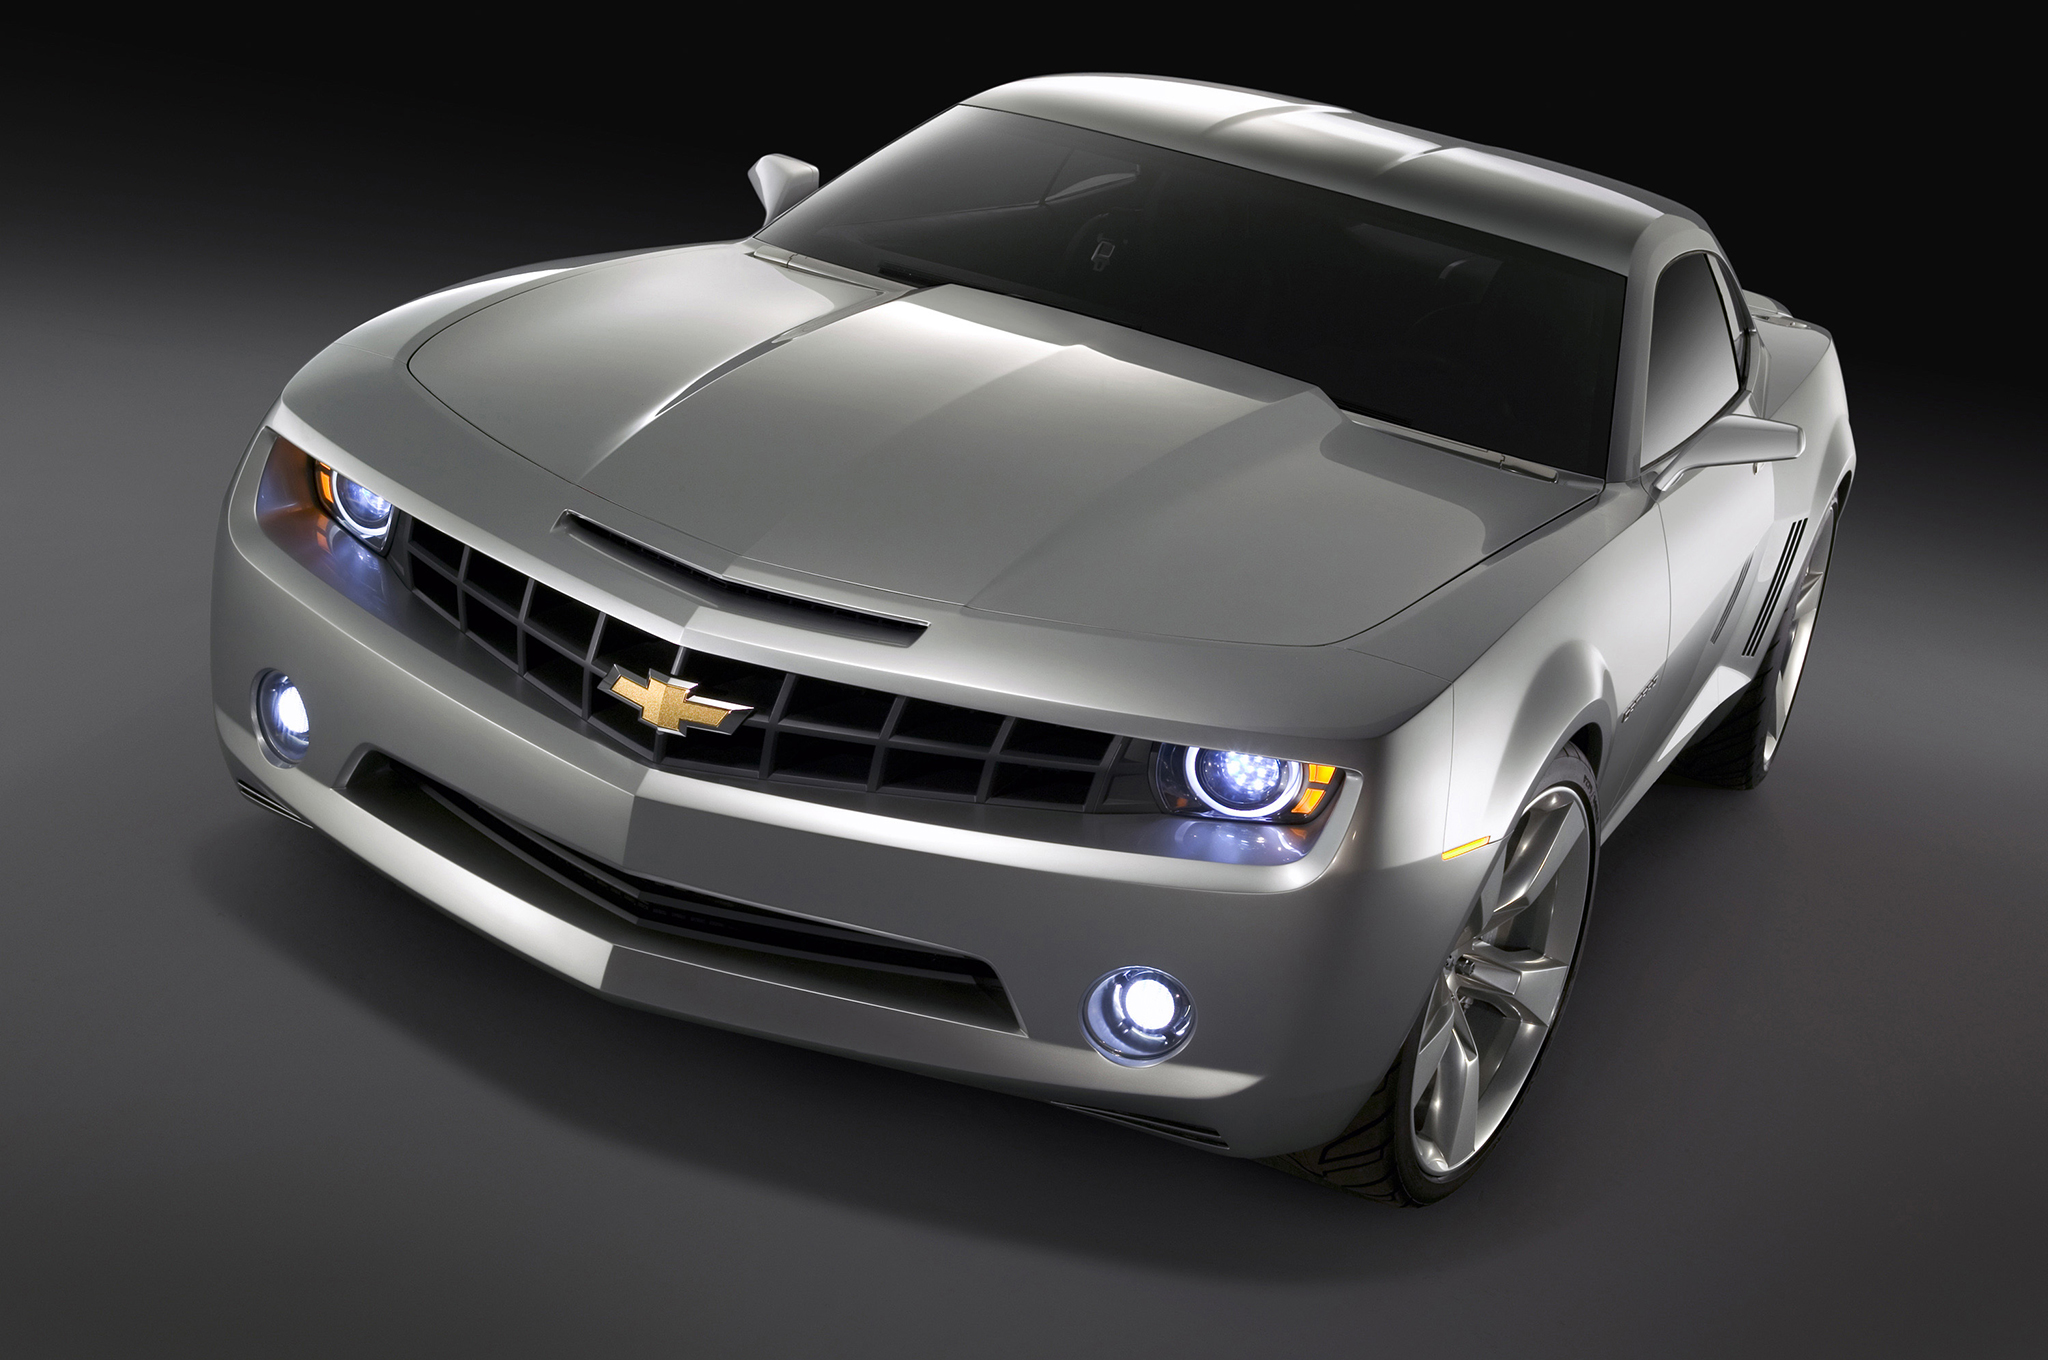 Chevrolet signaled the Camaro's return with a decidedly retro interpretation introduced as a concept vehicle in 2006. The production Gen 5 model would thankfully be executed almost identically to this dramatic, expressive concept.